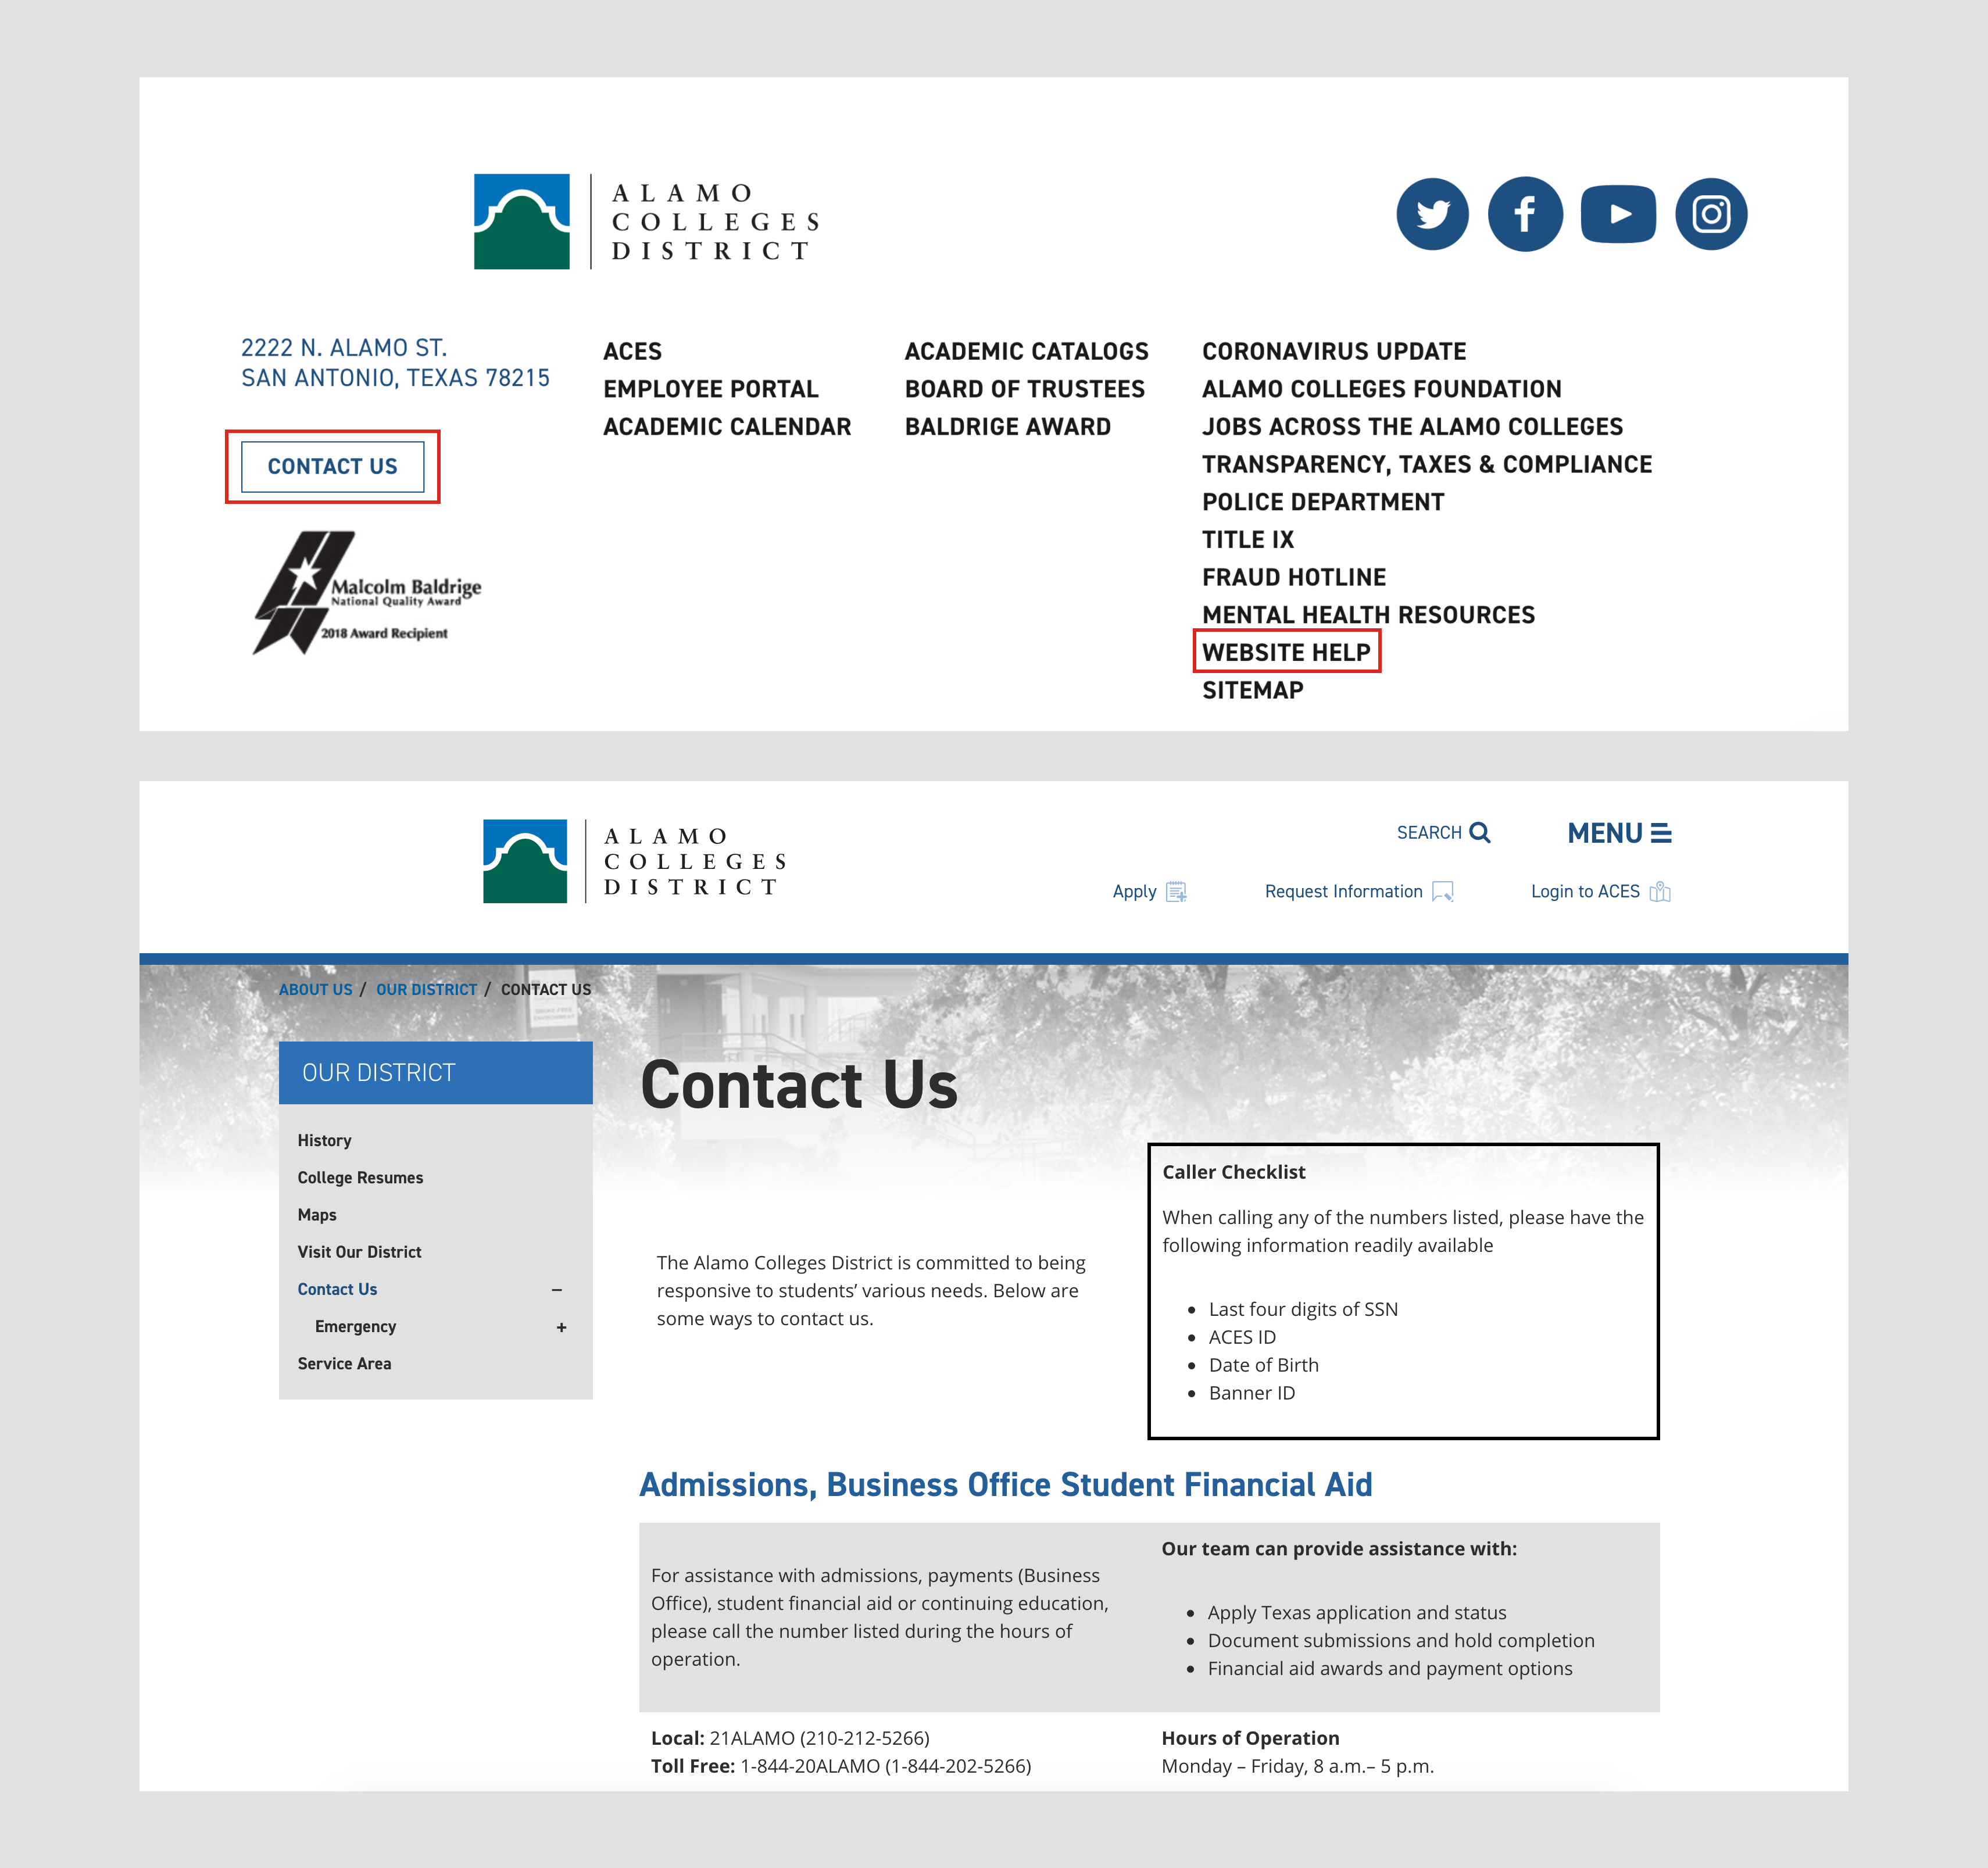 Screen grab of Alamo.edu website footer with highlighted red boxes around 'Contact Us' and 'Website Help' links, followed by a screen grab of the 'Contact Us' page.